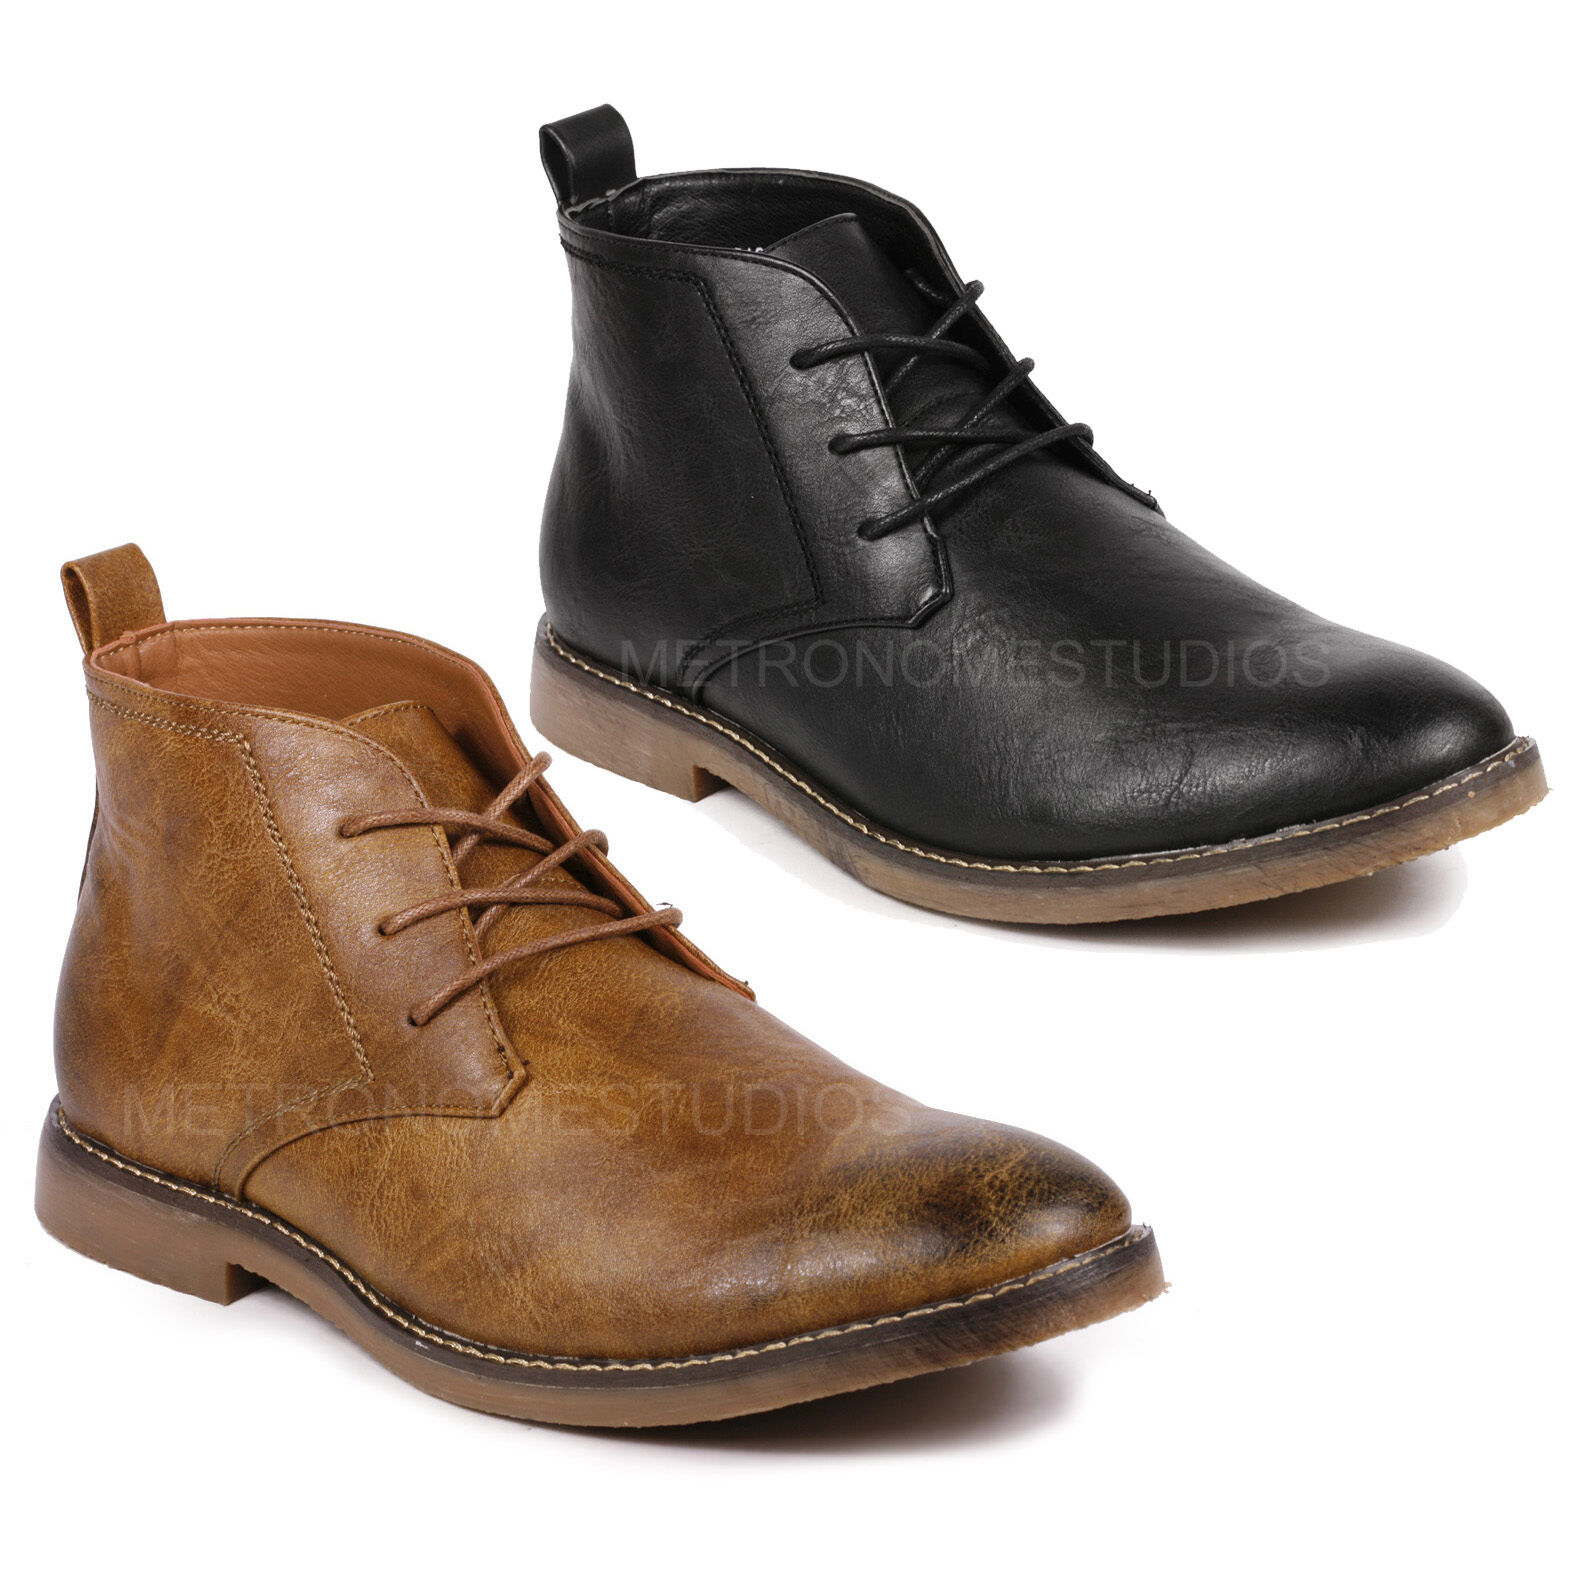 Boots - Men's Lace Up Casual Fashion Ankle Chukka Boots